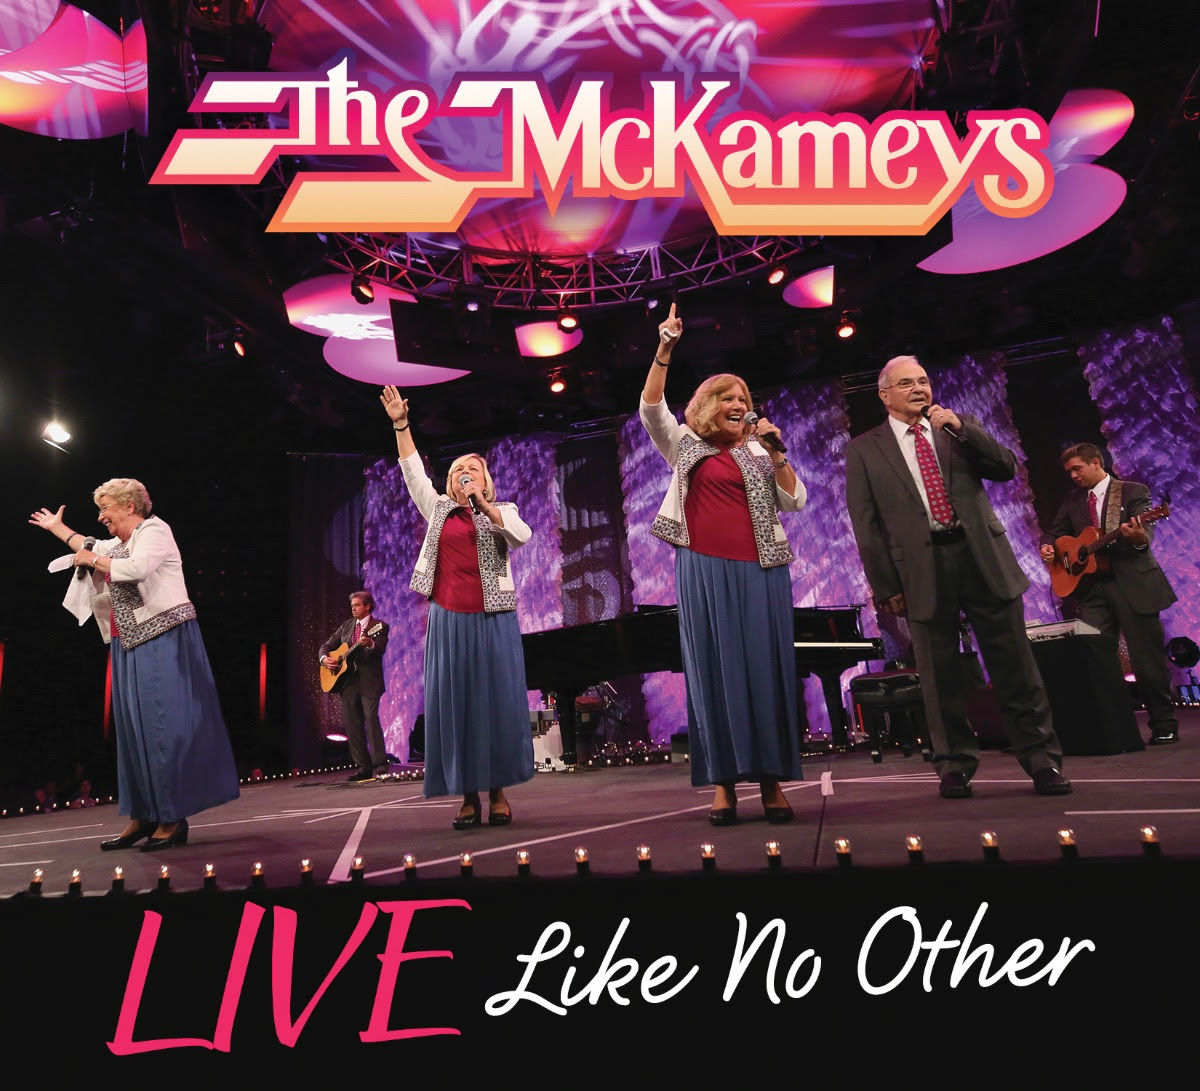 The McKameys release LIVE Like No Other